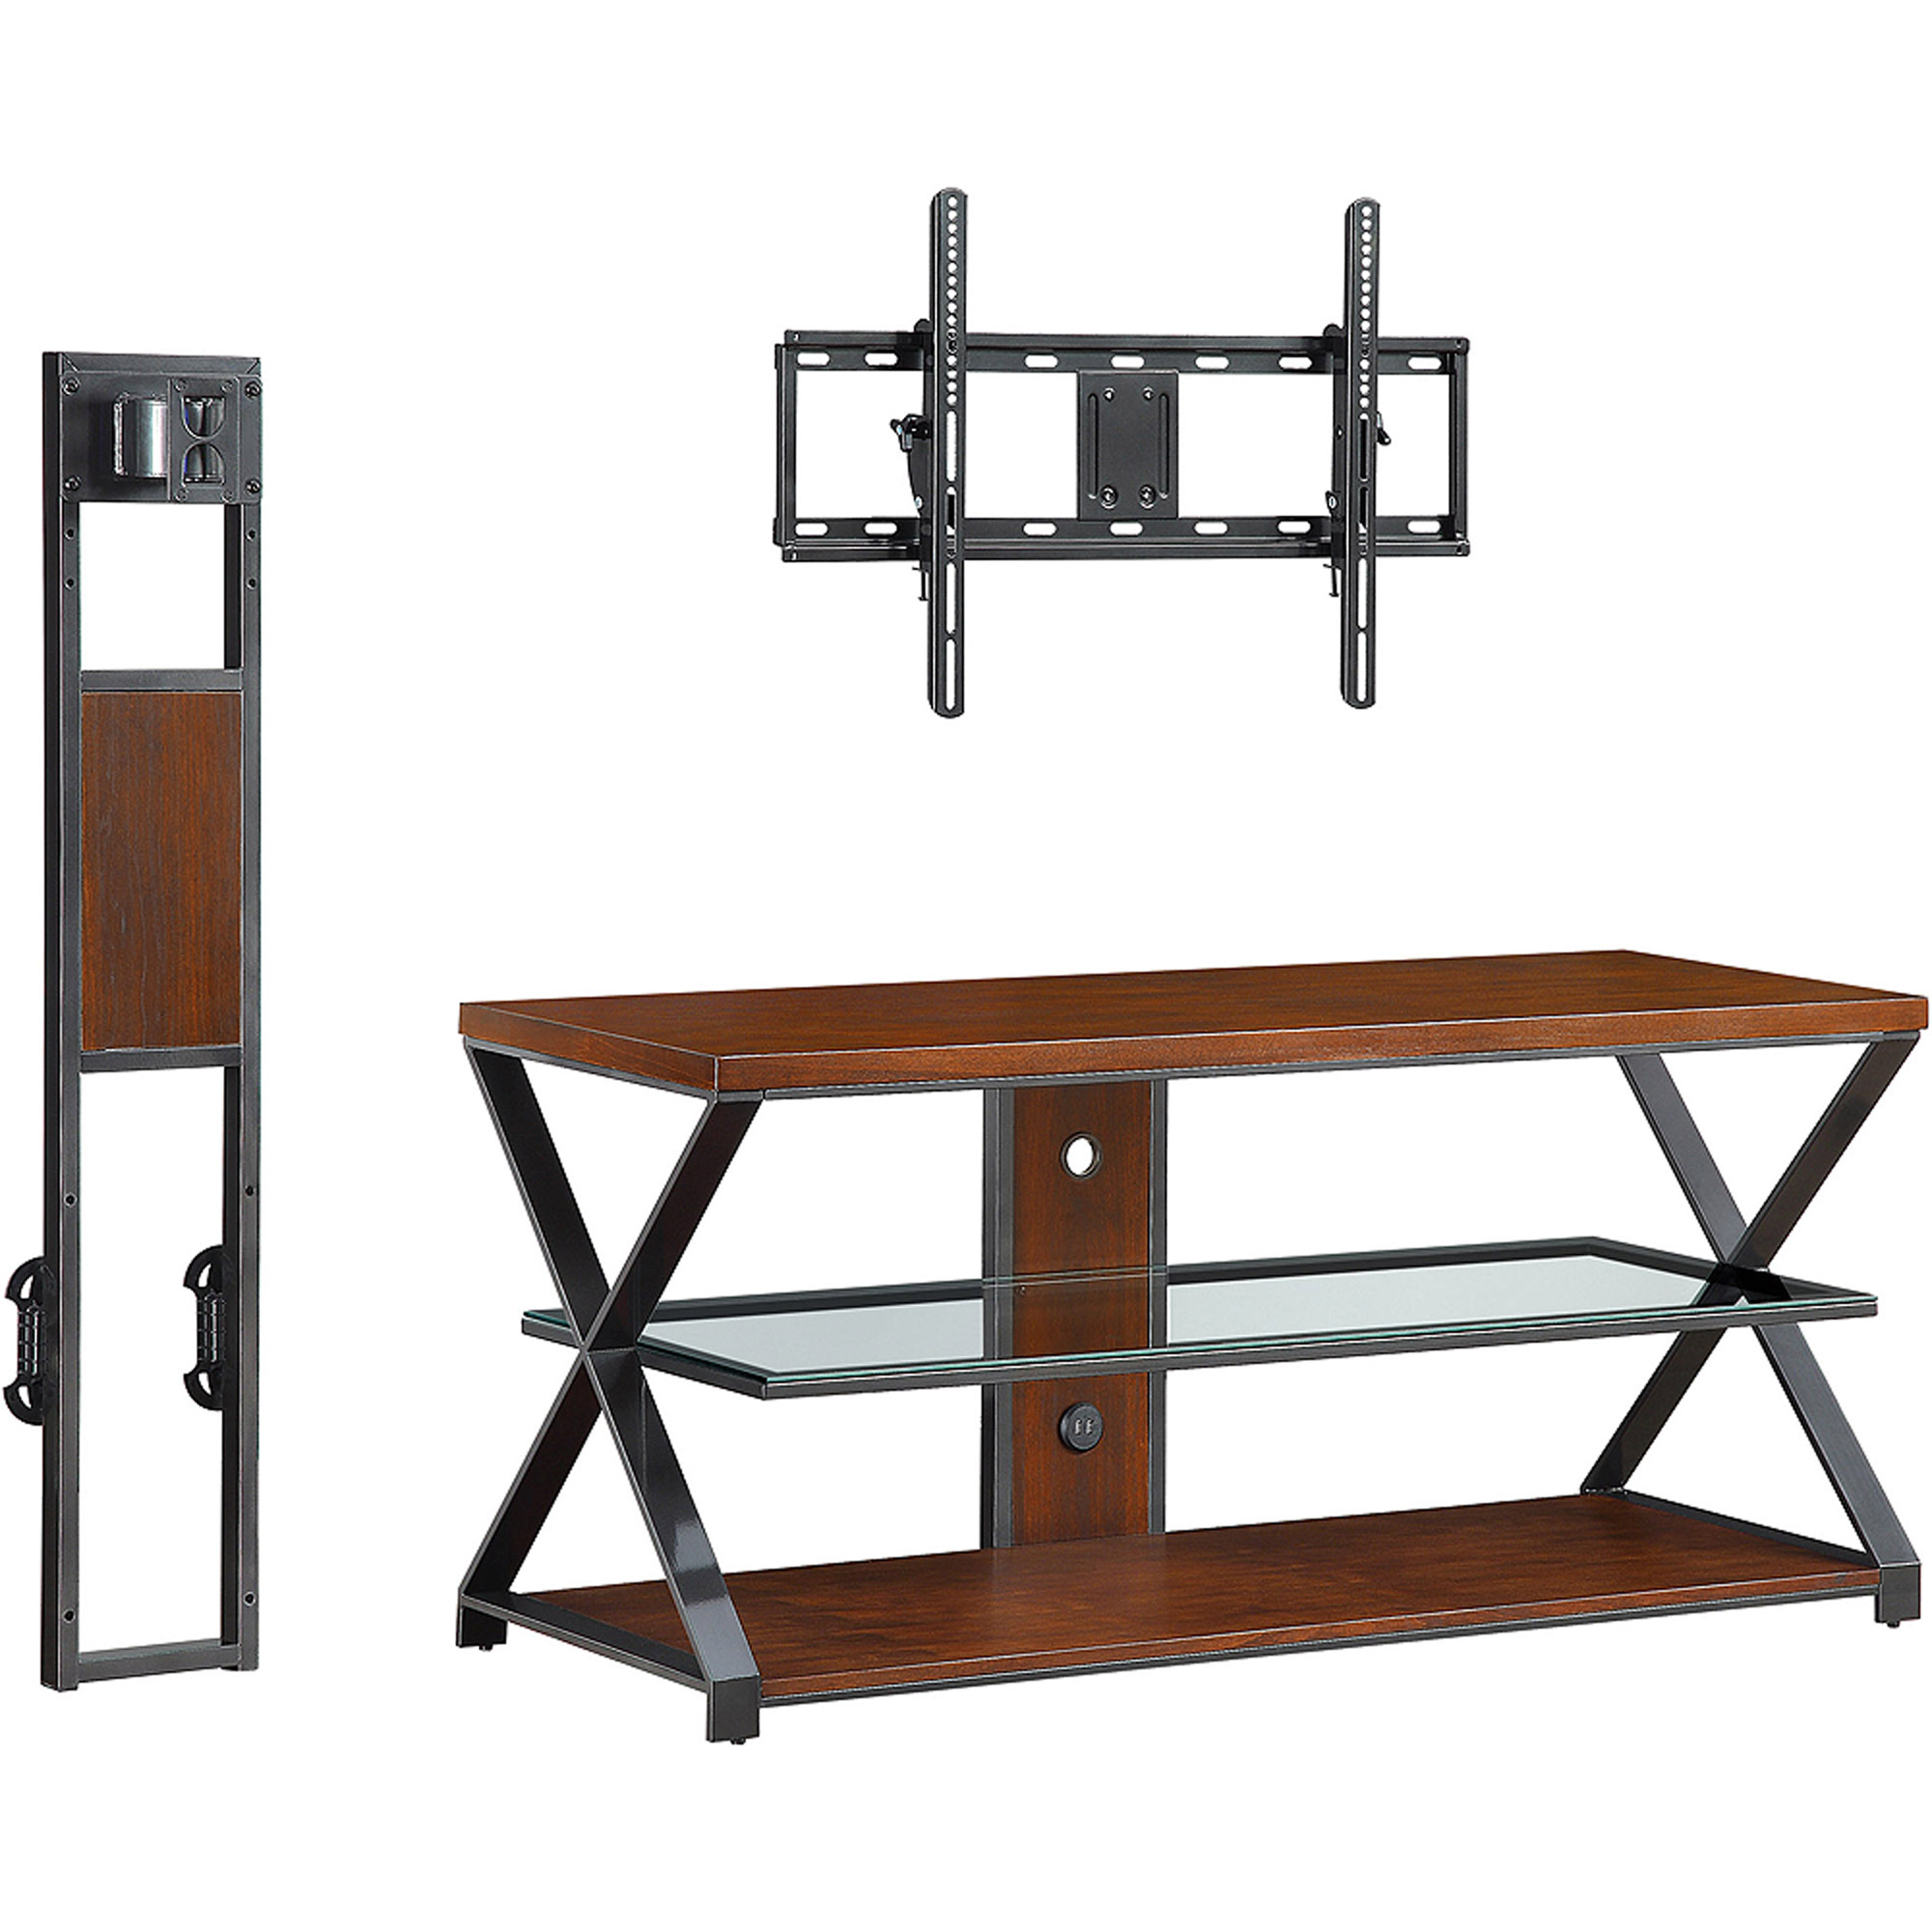 Sarah Tv Stands: Jaxon 3-In-1 Cognac Tv Stand For Tvs Up To 70'' regarding Jaxon 65 Inch Tv Stands (Image 23 of 30)